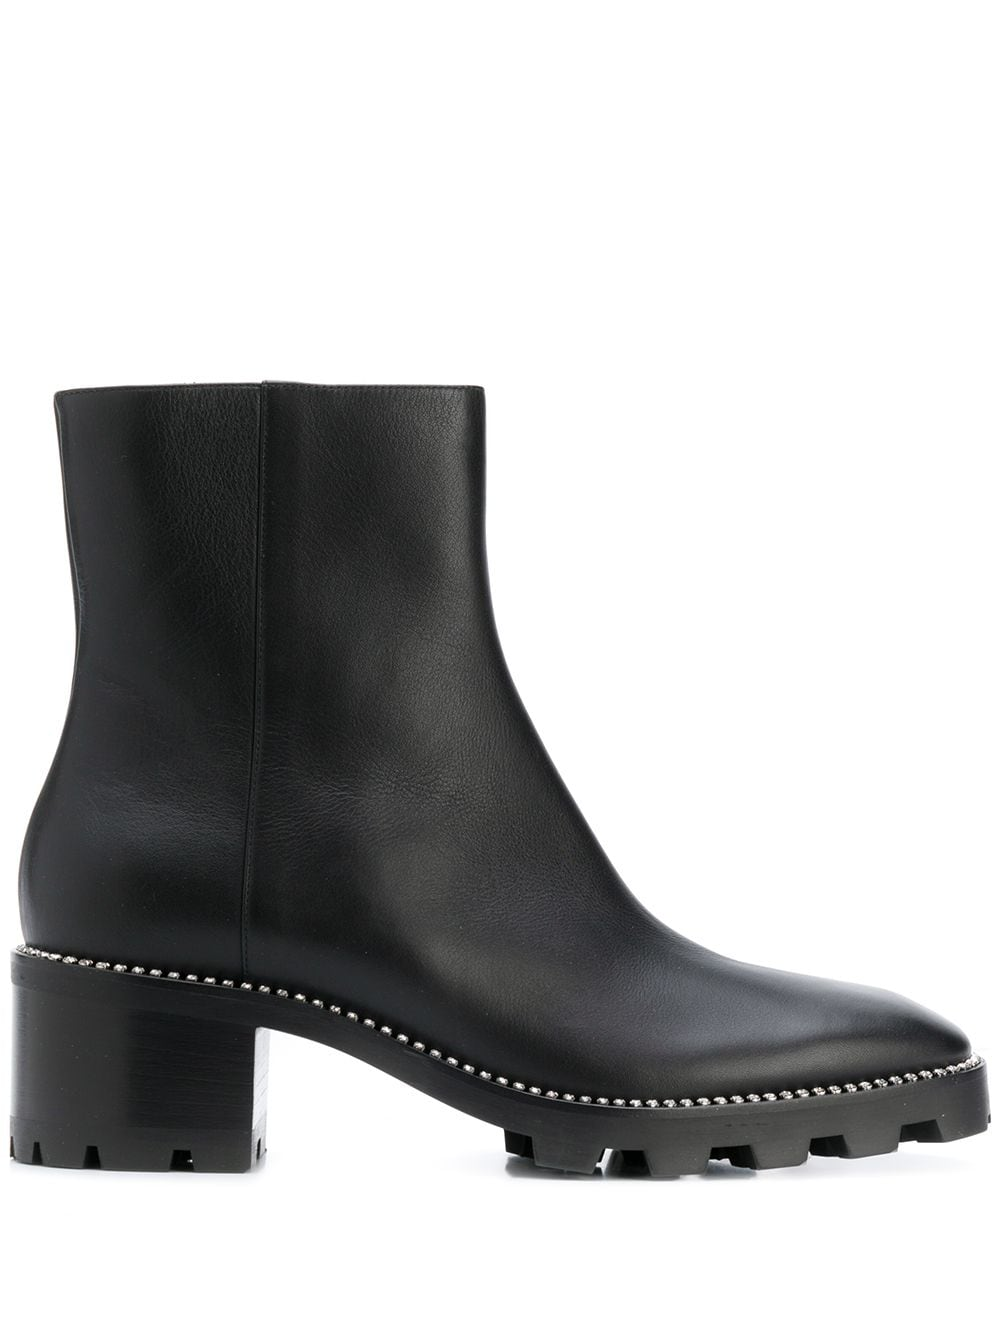 Mava Leanther Ankle Boots